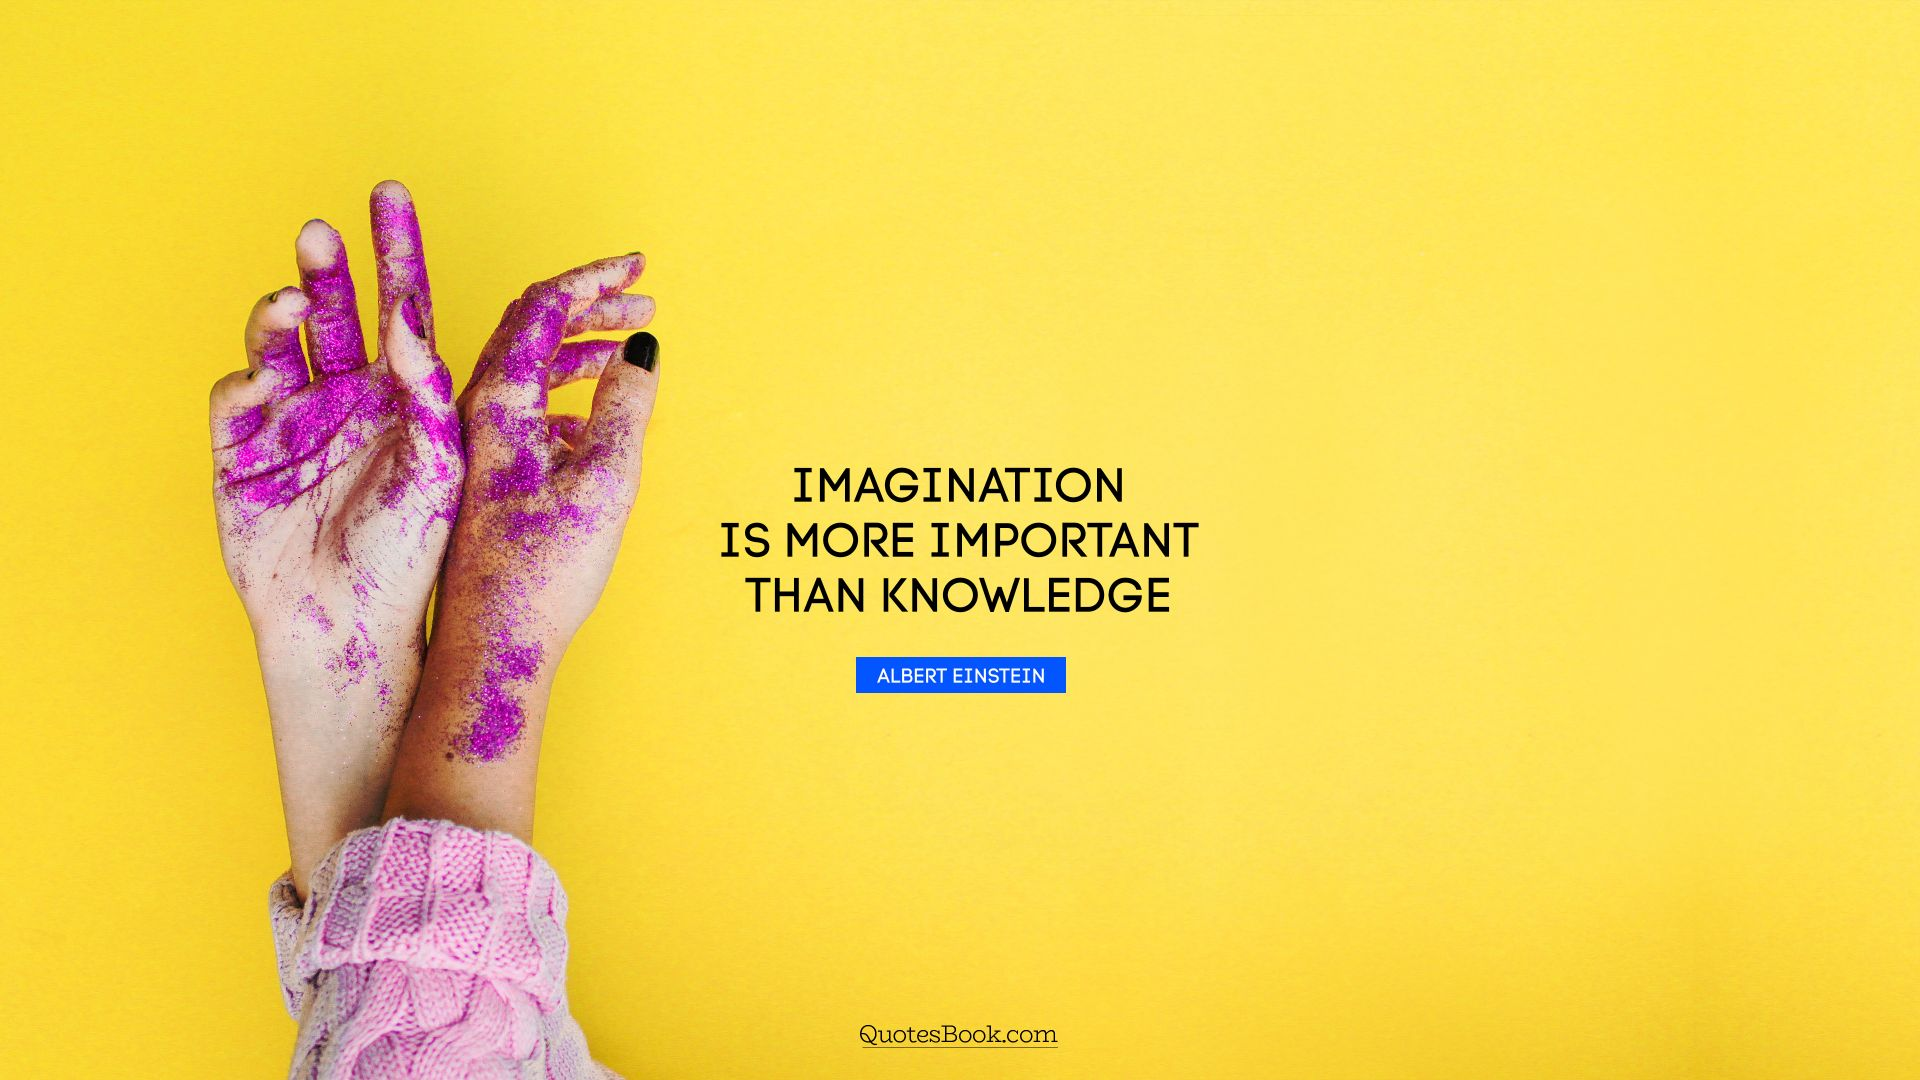 Imagination is more important than knowledge. - Quote by Albert Einstein